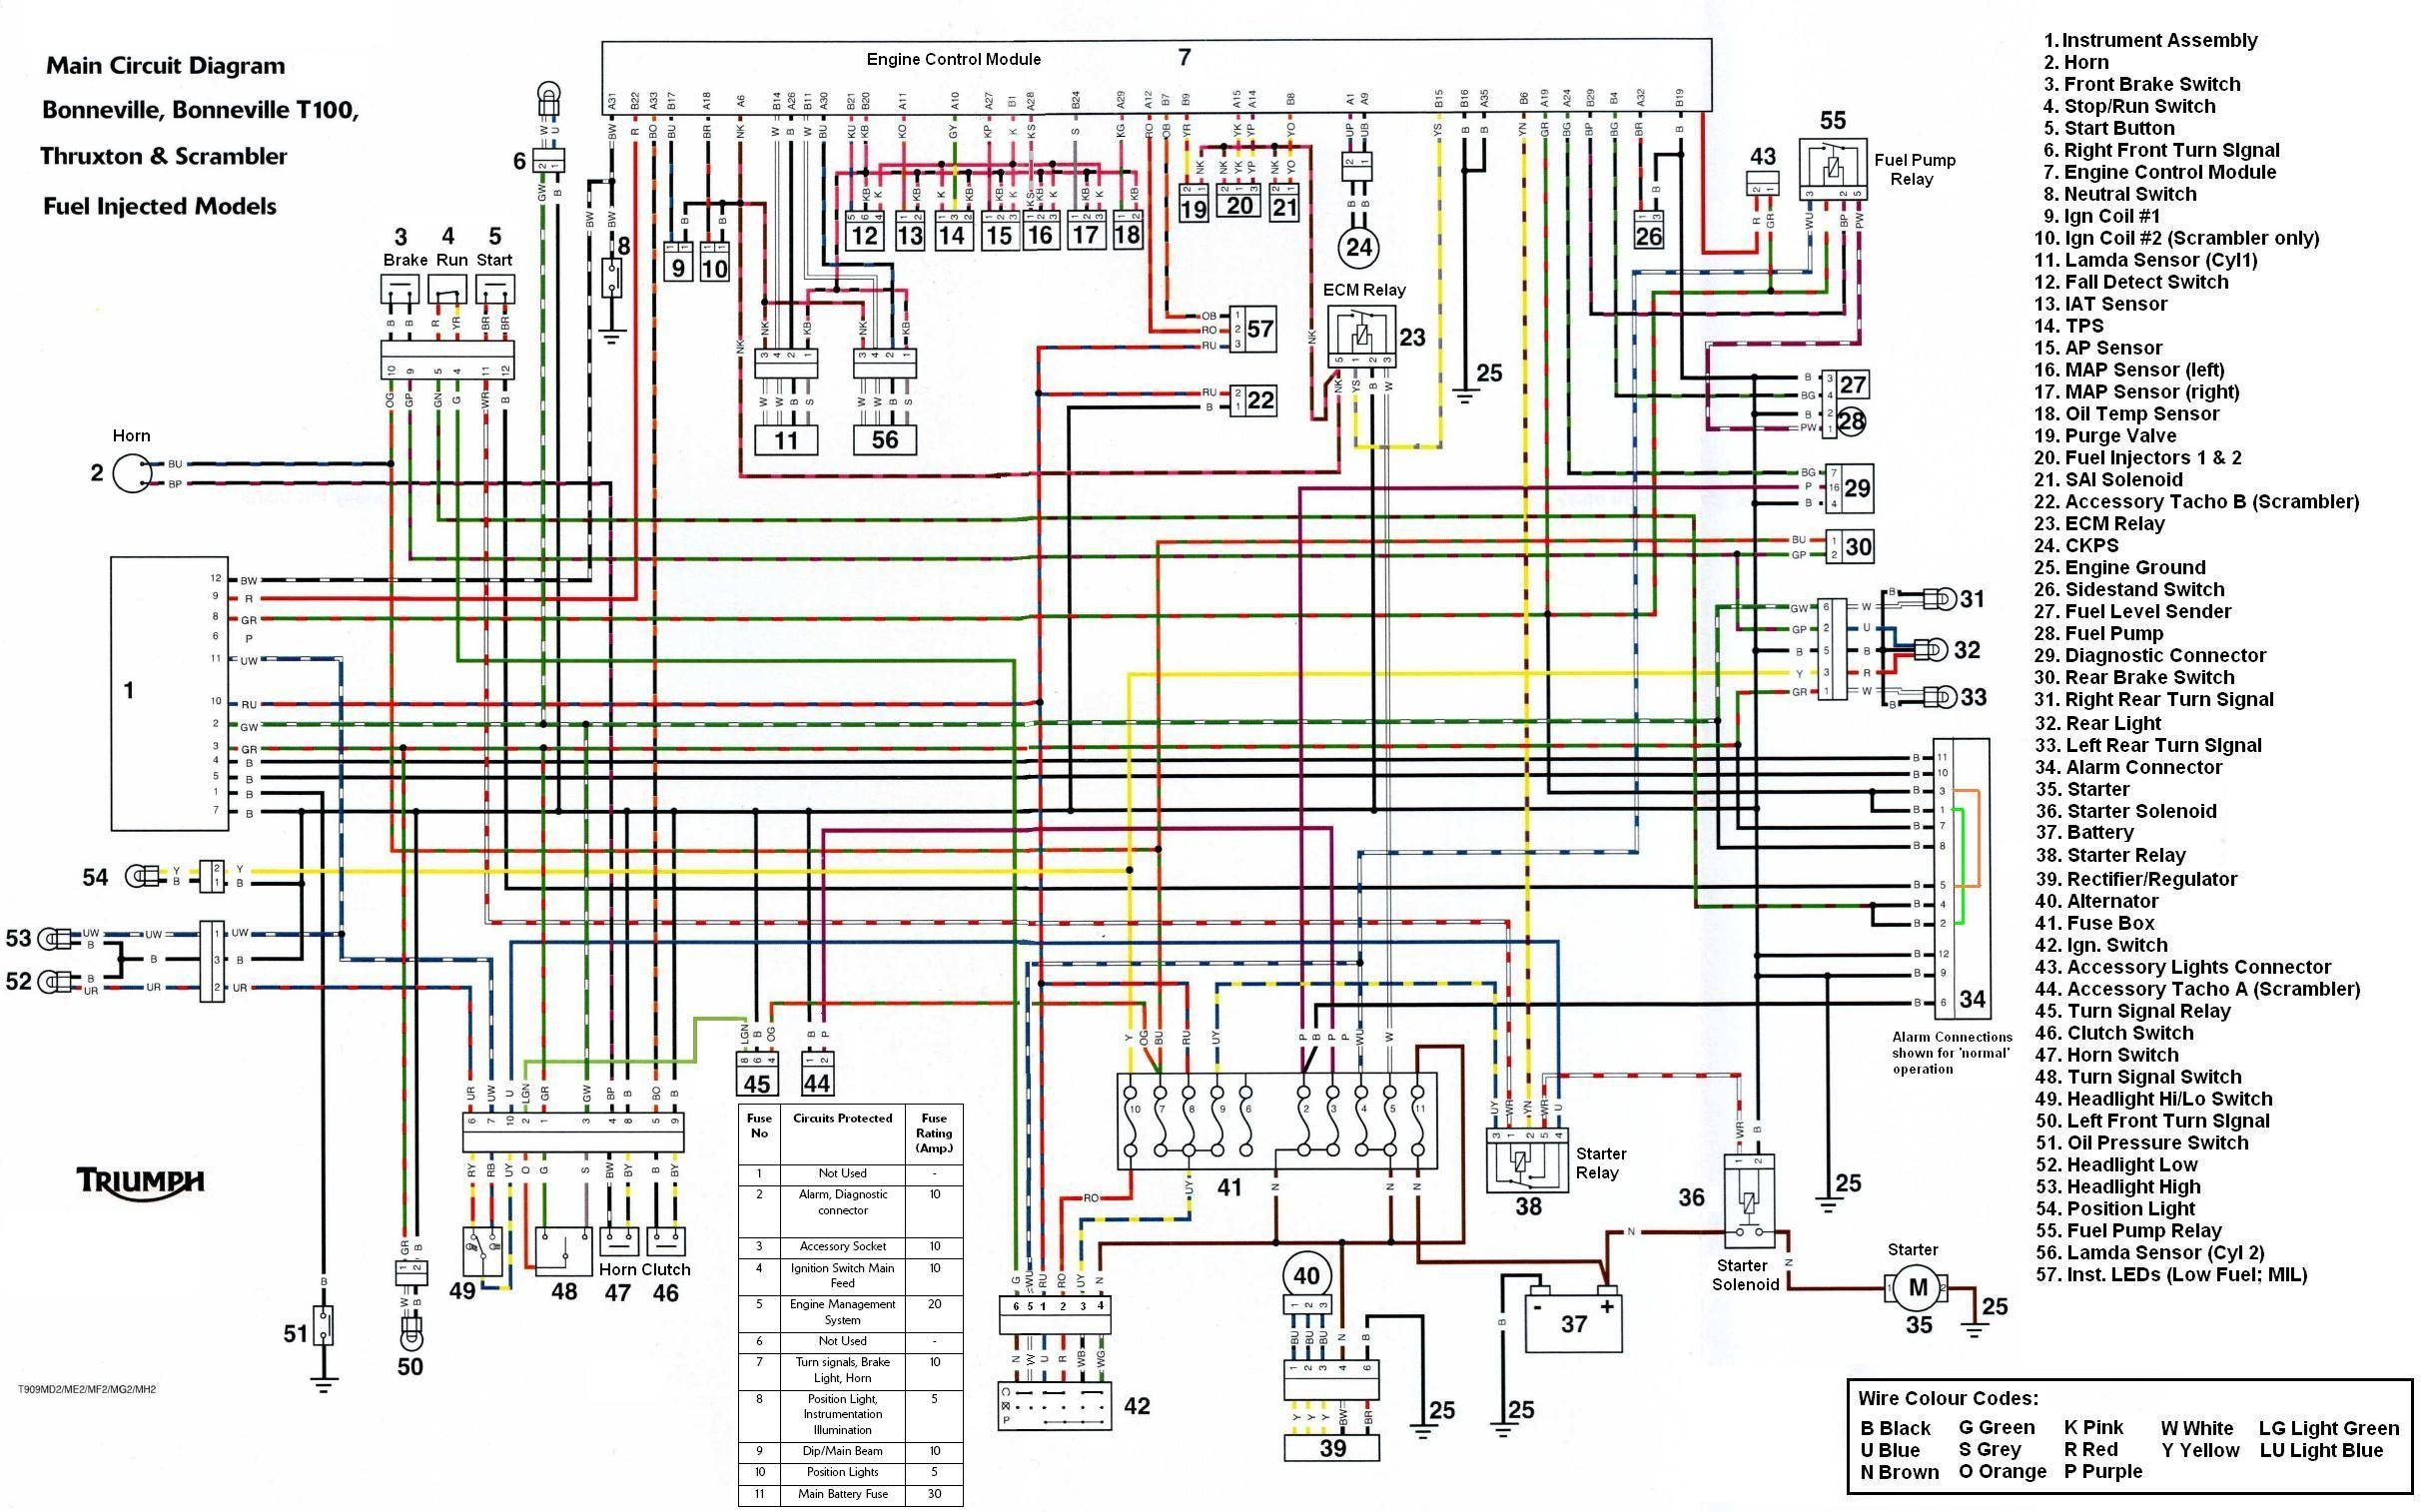 Triumph Wiring Diagram Simple - 2.sg-dbd.de • on motorcycle headlight diagram, motorcycle gas tank lock, motorcycle shifter diagram, motorcycle tow hitches, motorcycle battery diagram, motorcycle magneto diagram, motorcycle foot controls diagram, motorcycle harness diagram, electric motorcycle diagram, motorcycle relay diagram, motorcycle body diagram, motorcycle brakes diagram, schematic diagram, motorcycle fuel reserve, motorcycle stator diagram, motorcycle carb diagram, motorcycle wire color codes, motorcycle motors diagram, motorcycle coil diagram, motorcycle maintenance diagram,